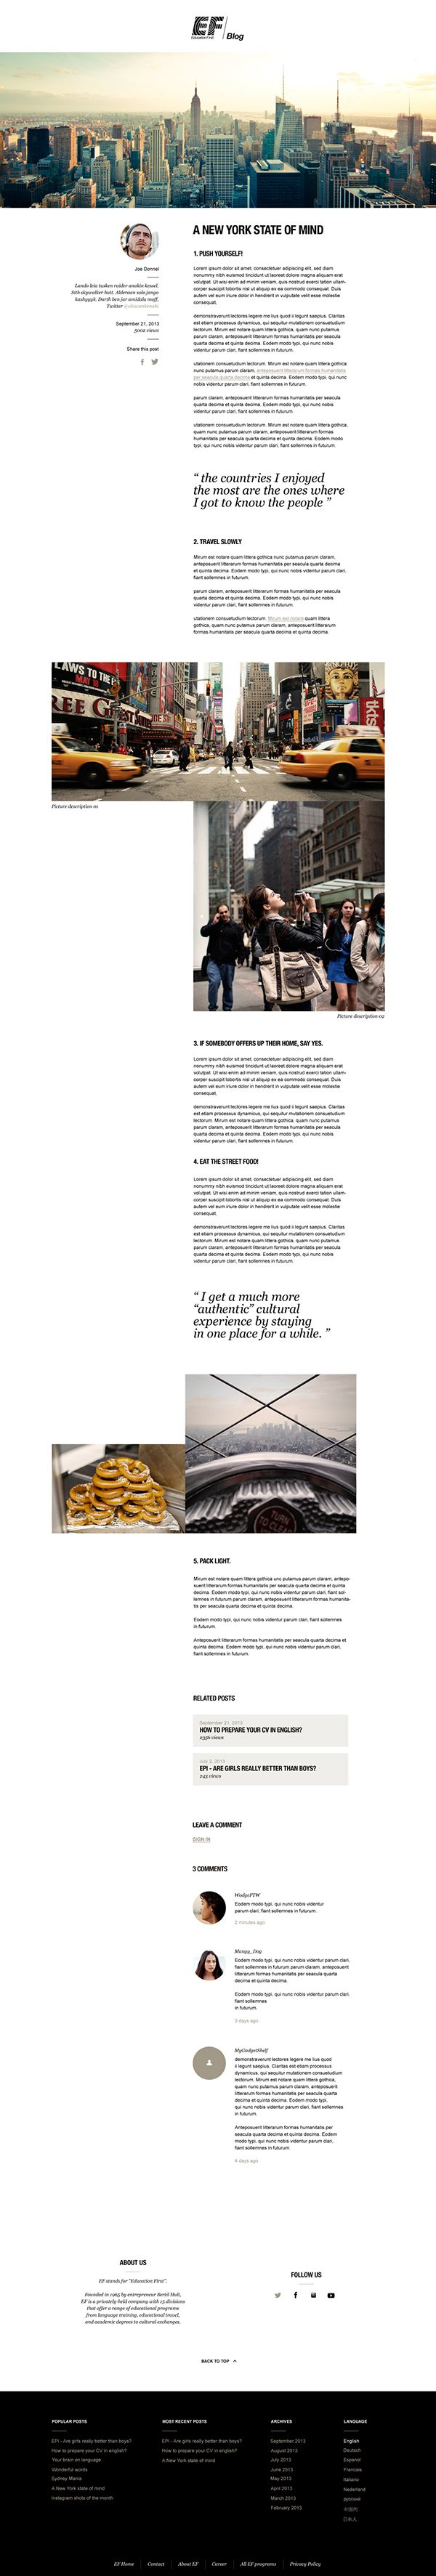 Web | EF Blog on Behance // Somewhat similar to the design I currently have on my site, just missing the third column.